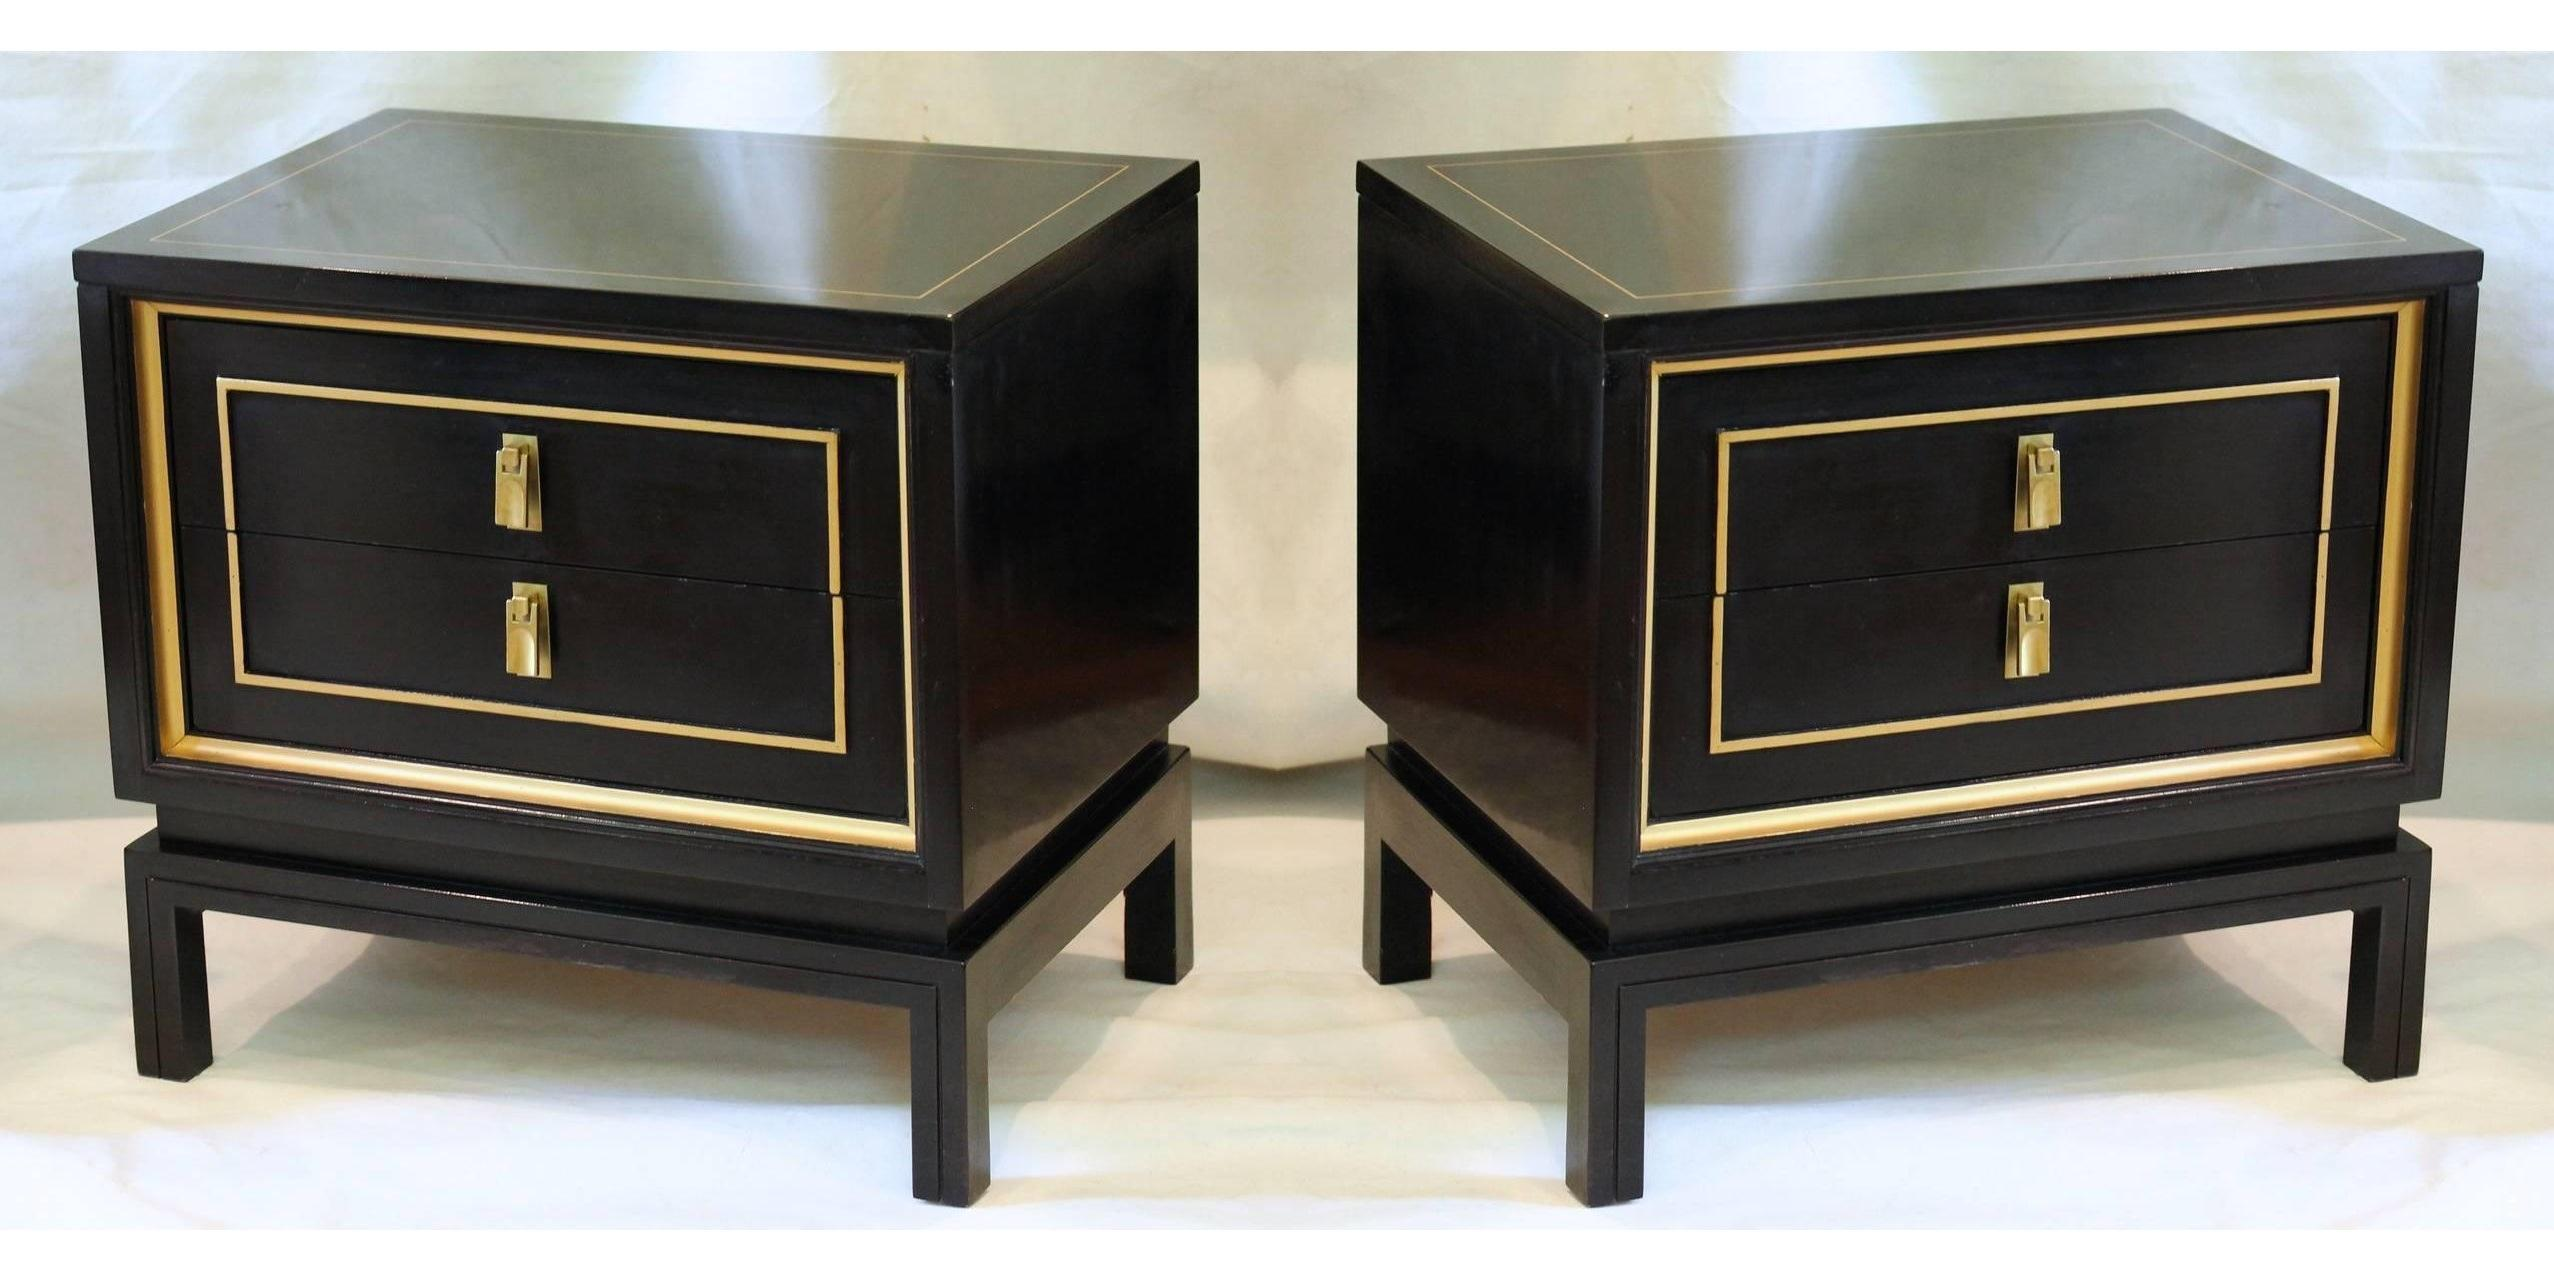 Pair Of Black Lacquered And Gold Nightstands Or End Tables At 1stdibs